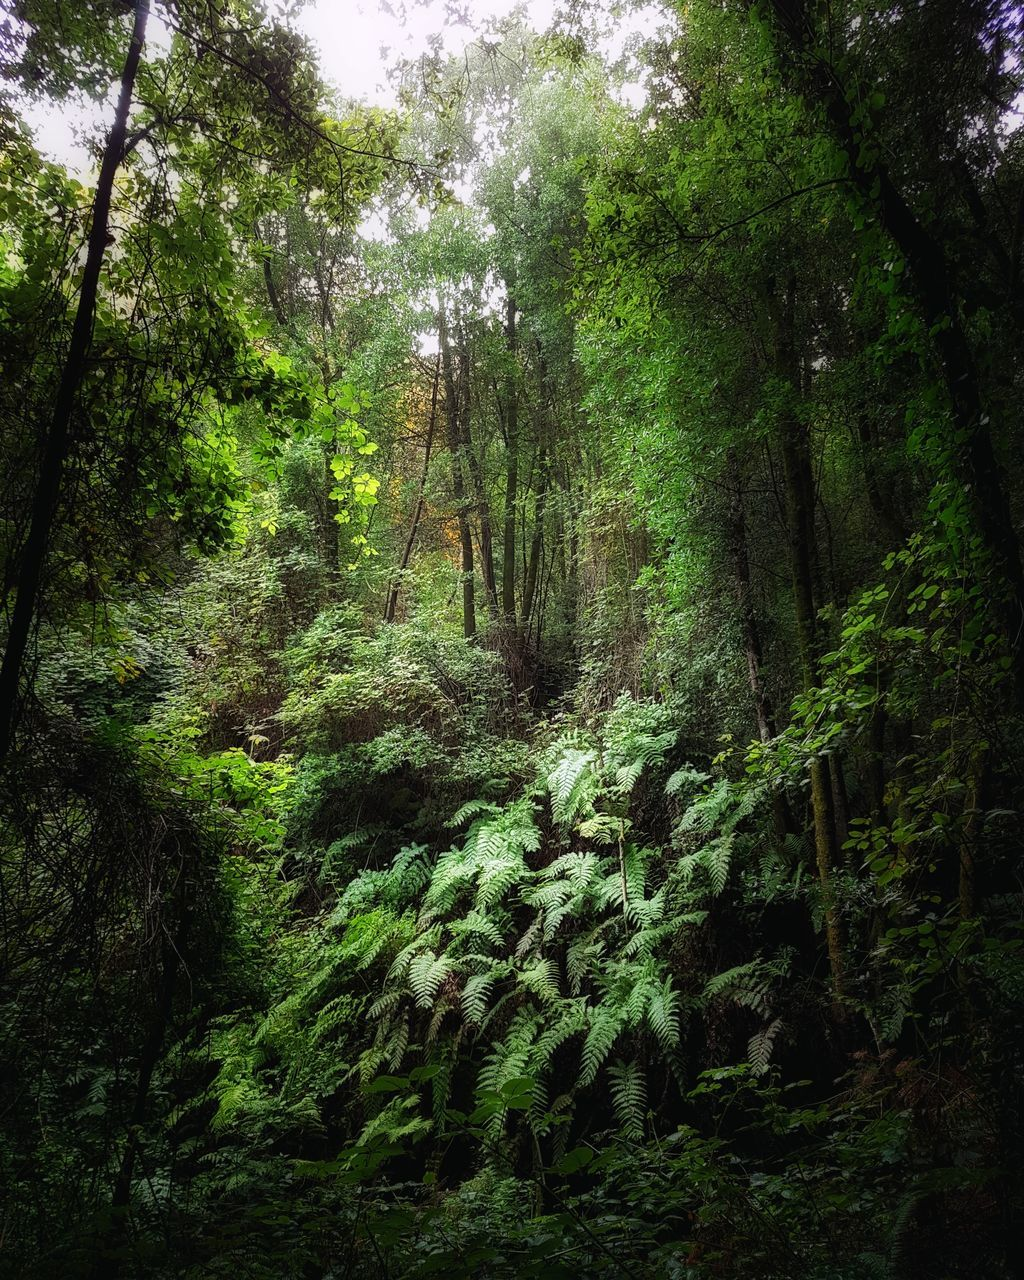 forest, tree, nature, growth, tranquility, lush foliage, tranquil scene, day, beauty in nature, scenics, no people, outdoors